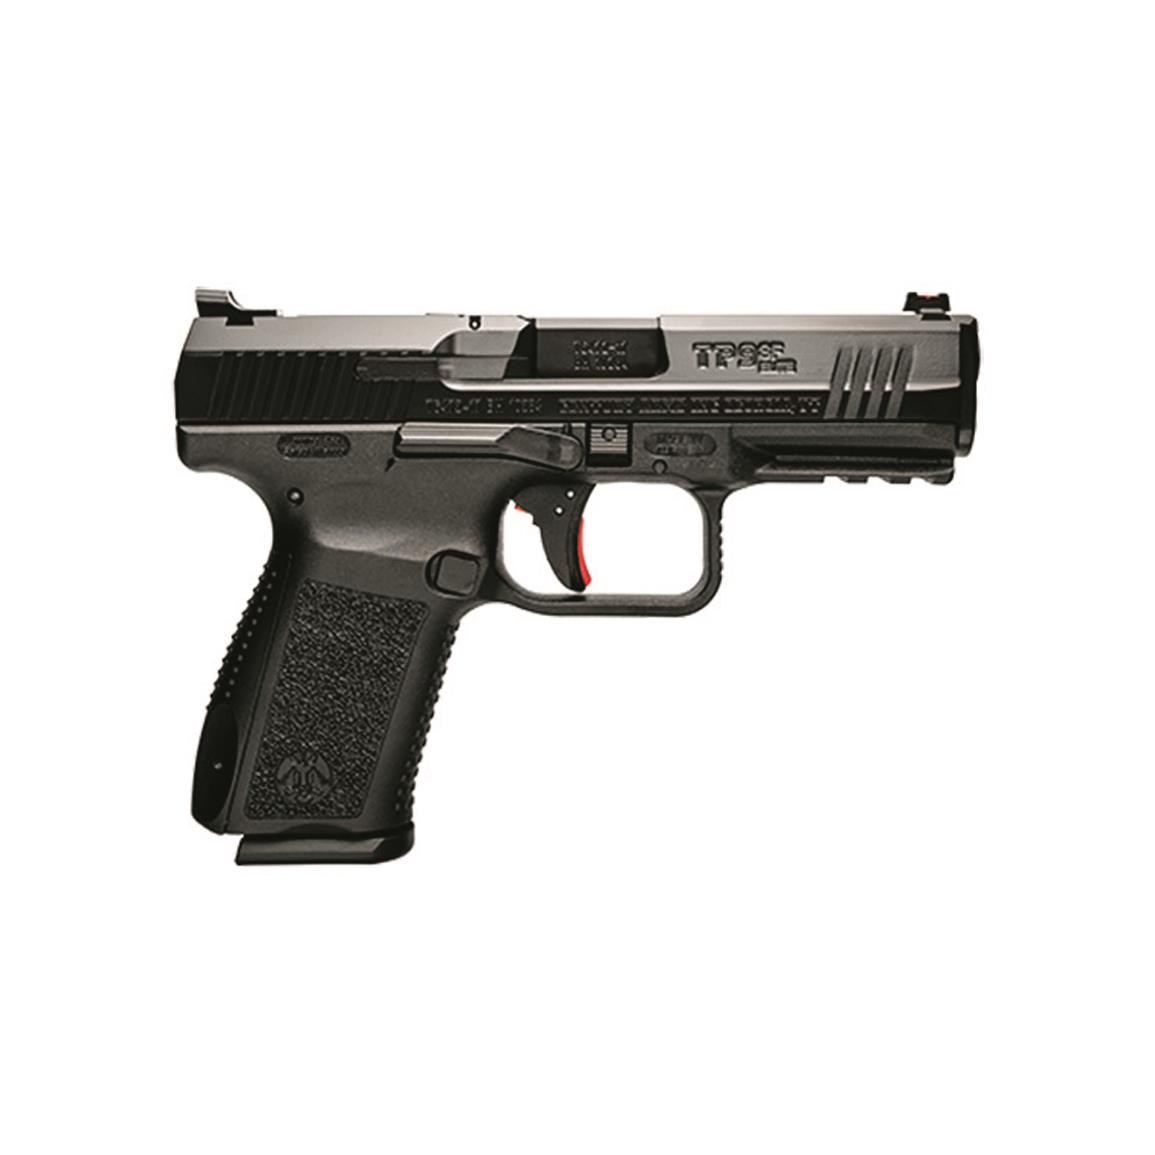 "Century Arms Canik TP9SF Elite-S, Semi-Automatic, 9mm, 4.19"" Barrel, 15+1 Rounds"